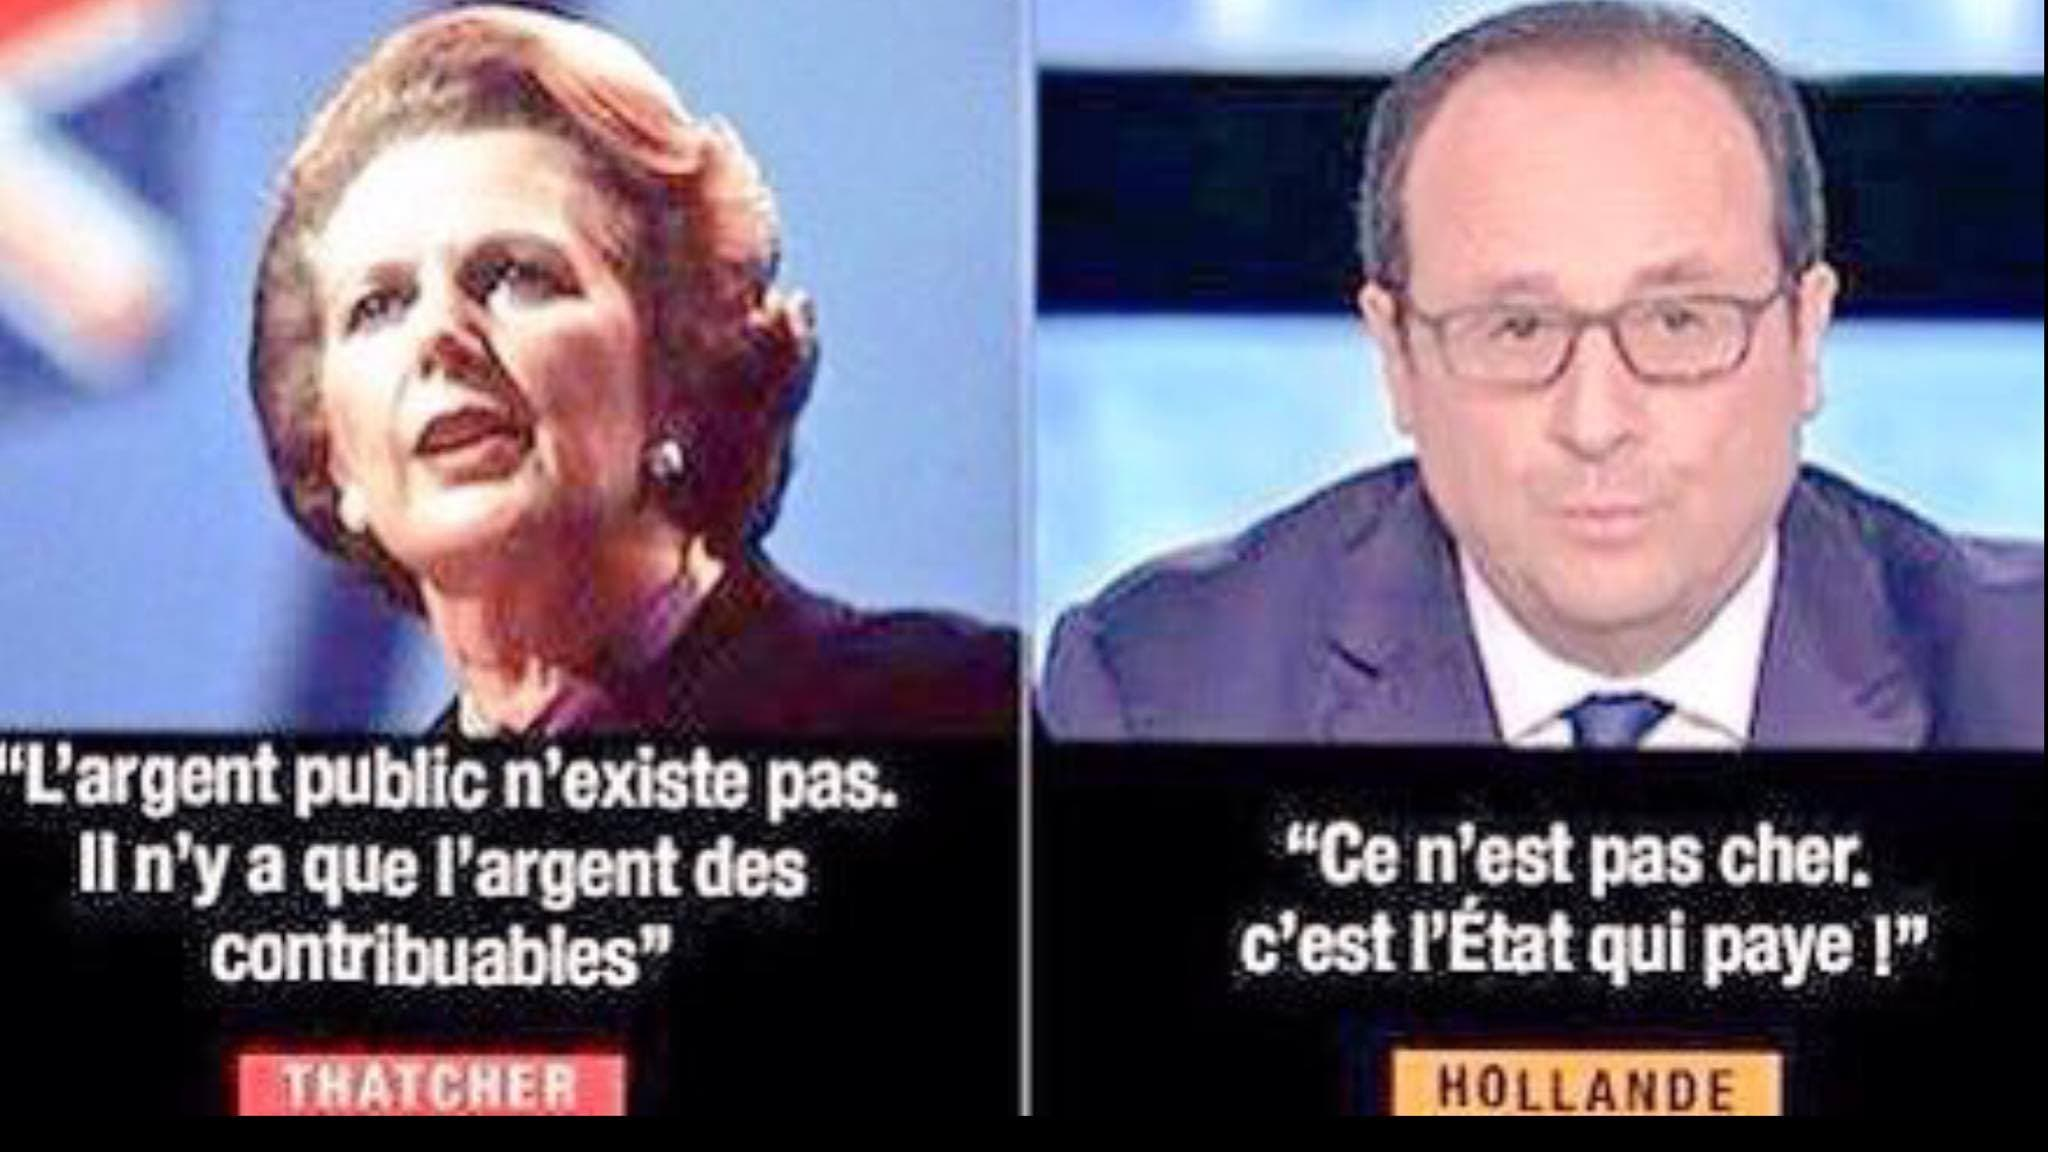 hollande paie